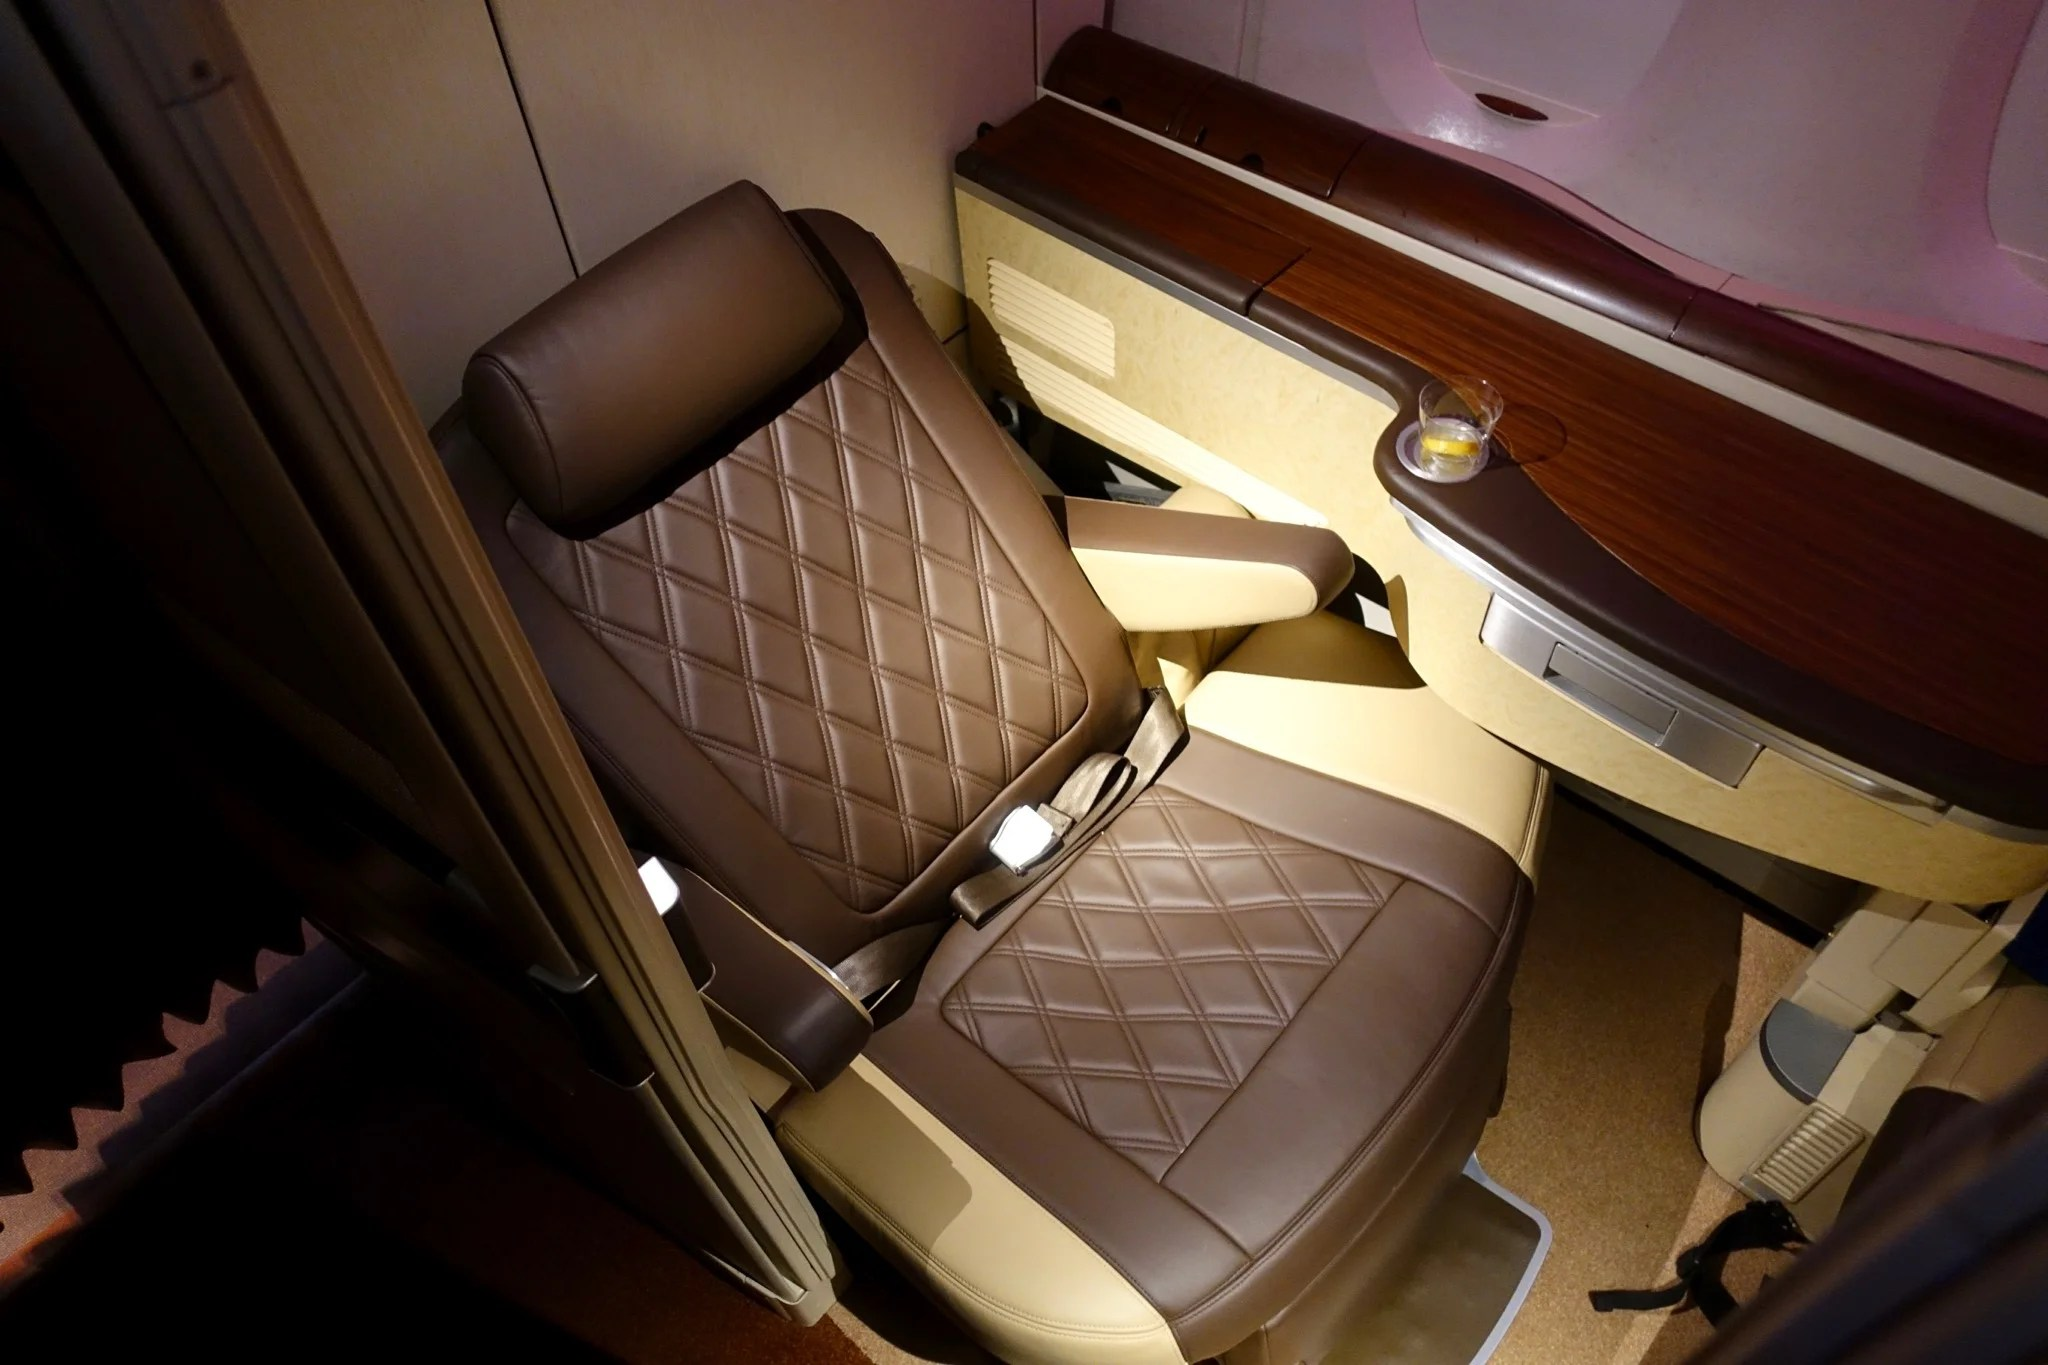 Peachy Double Beds For Cheap Flying Norwegian On Hi Flys A380 Beatyapartments Chair Design Images Beatyapartmentscom